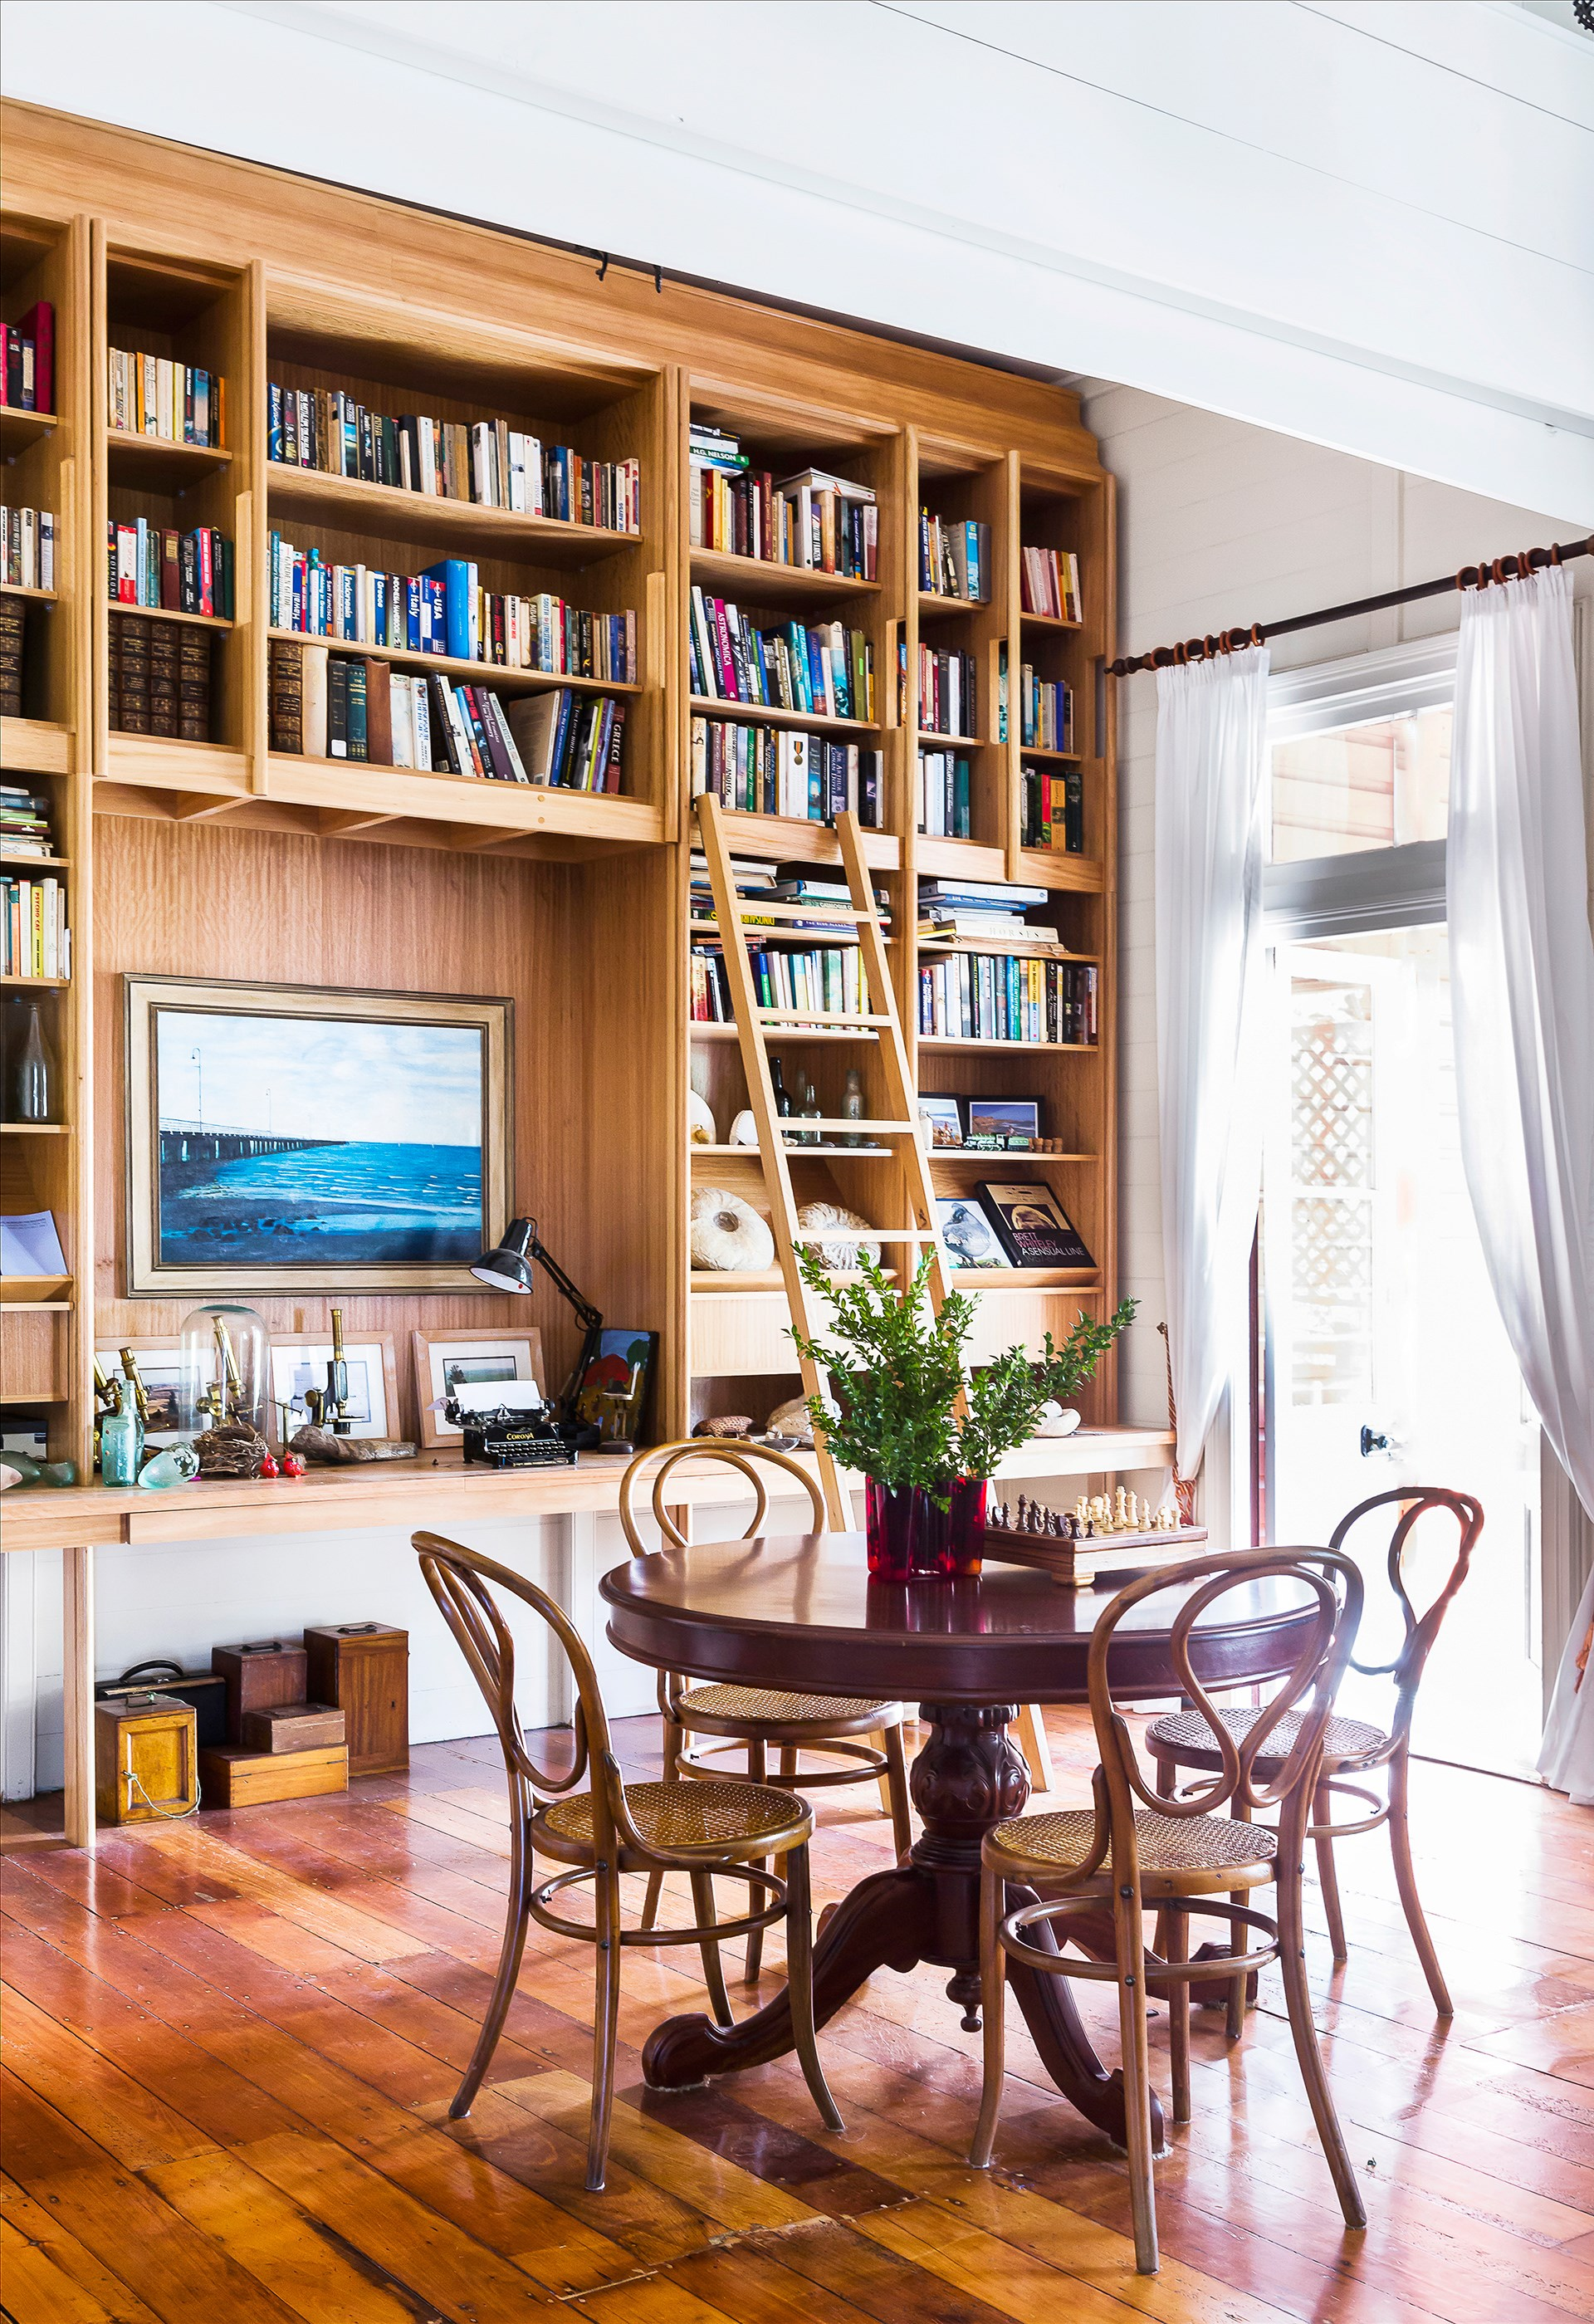 The library-style shelves, designed by Stuart Vokes and made by Desks Etc, contain all manner of books and antiques the family has collected over the years. The vintage table and Bentwood chairs are all eBay finds. Painting by Greg Dwyer. Photo: Maree Homer / *Australian House & Garden*